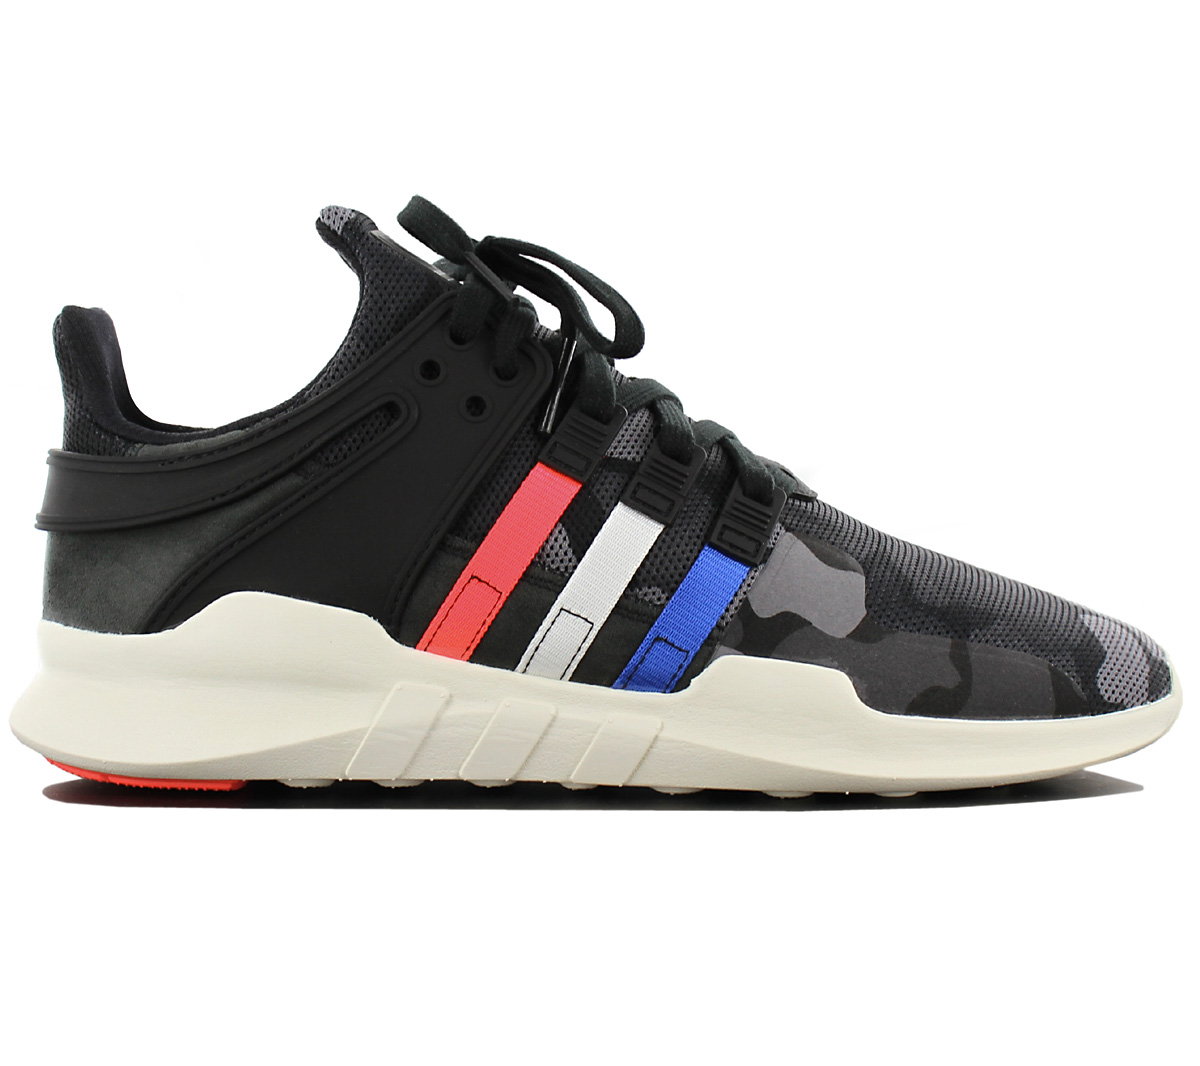 Details about Adidas Originals Equipment Eqt Support Adv Sneaker Shoes Camouflage BB1309 New